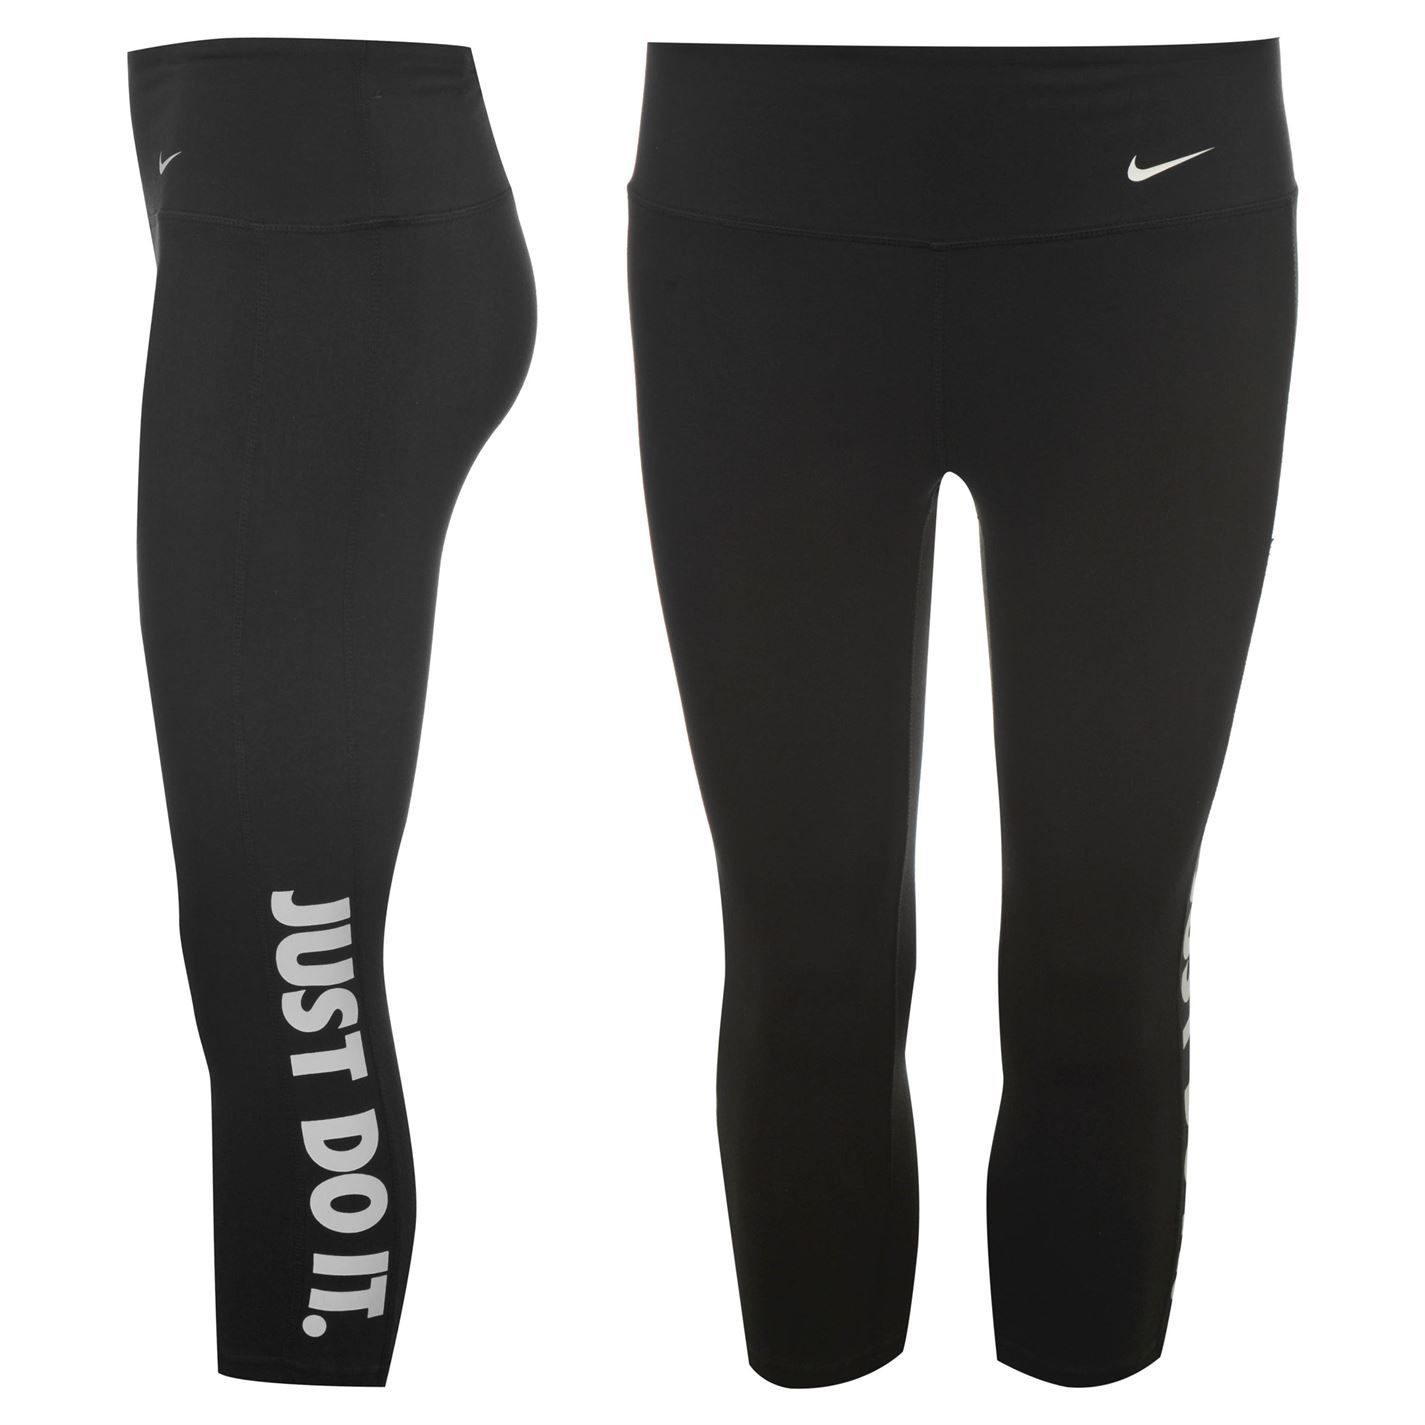 Nike | Nike Graphic Capri Pants Ladies | Ladies Three Quarter ...